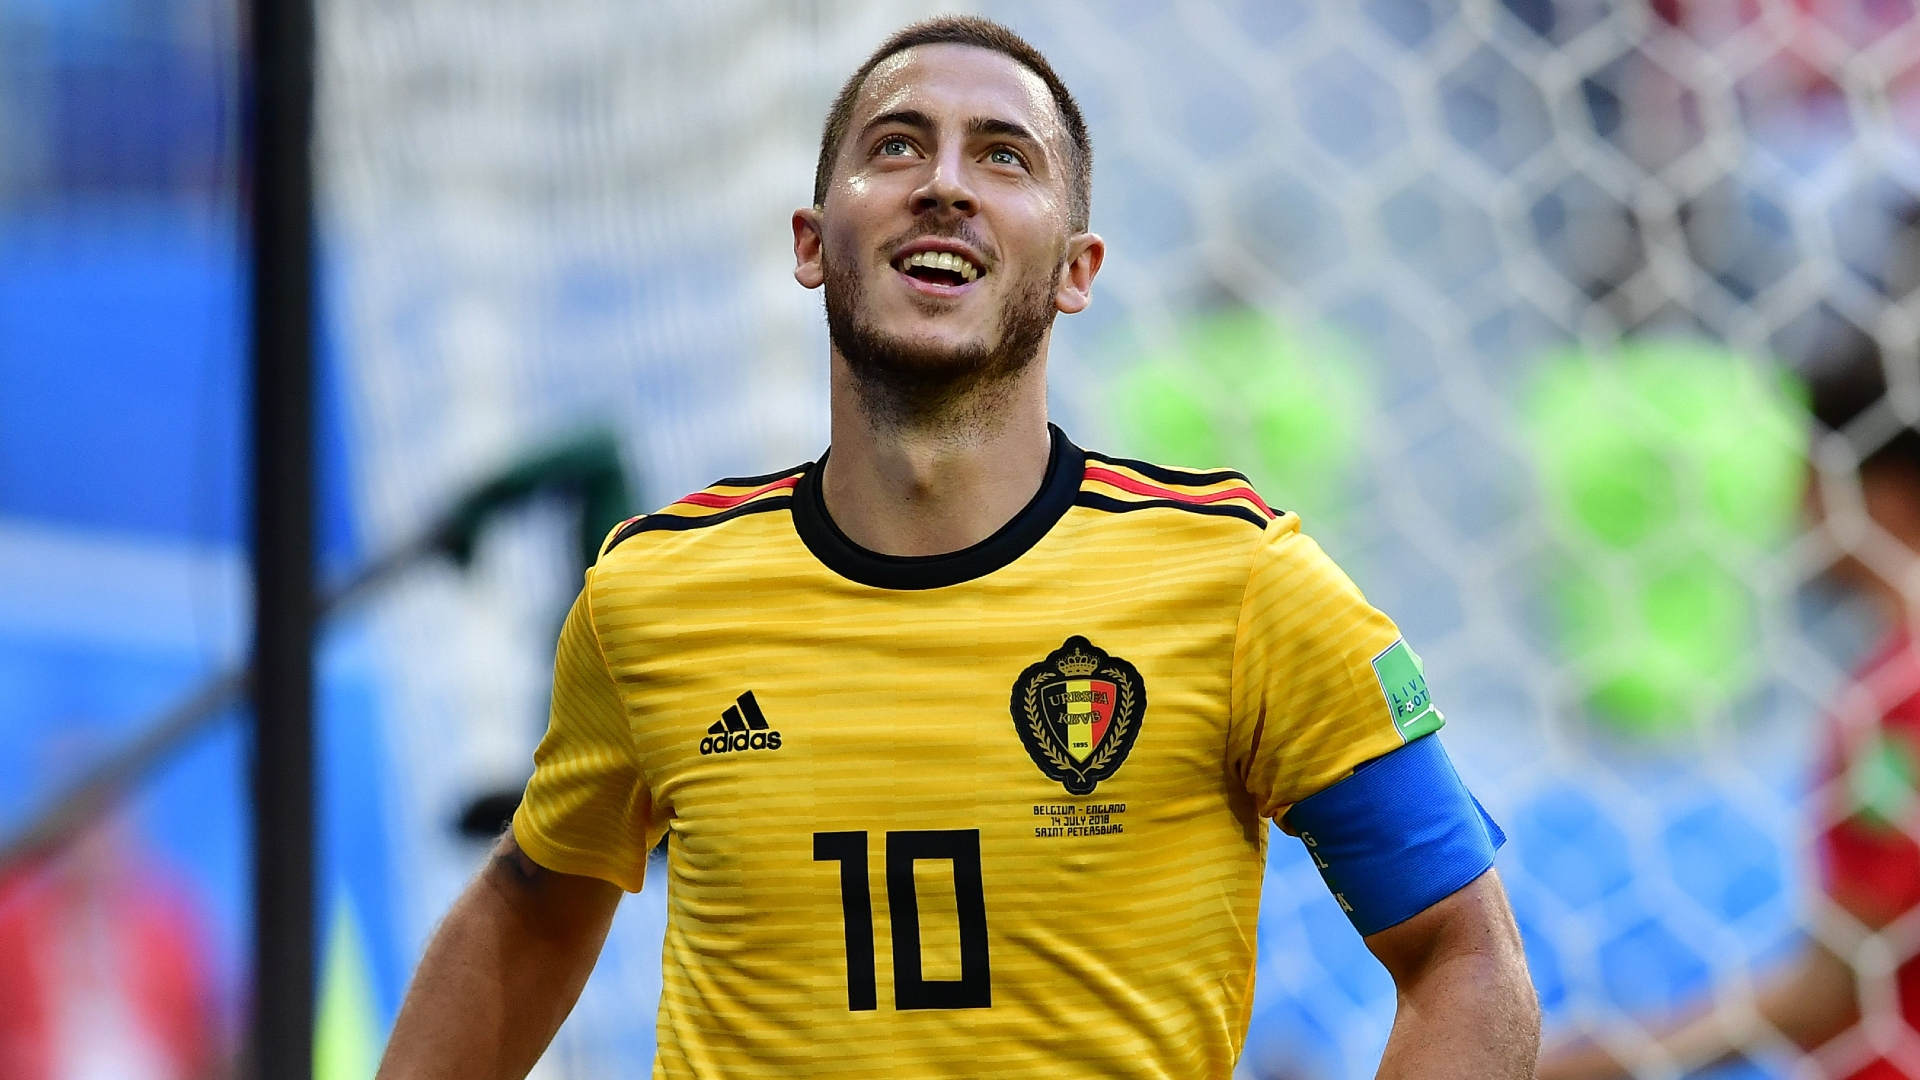 Eden Hazard will have to make up for Kevin De Bruyne's absence